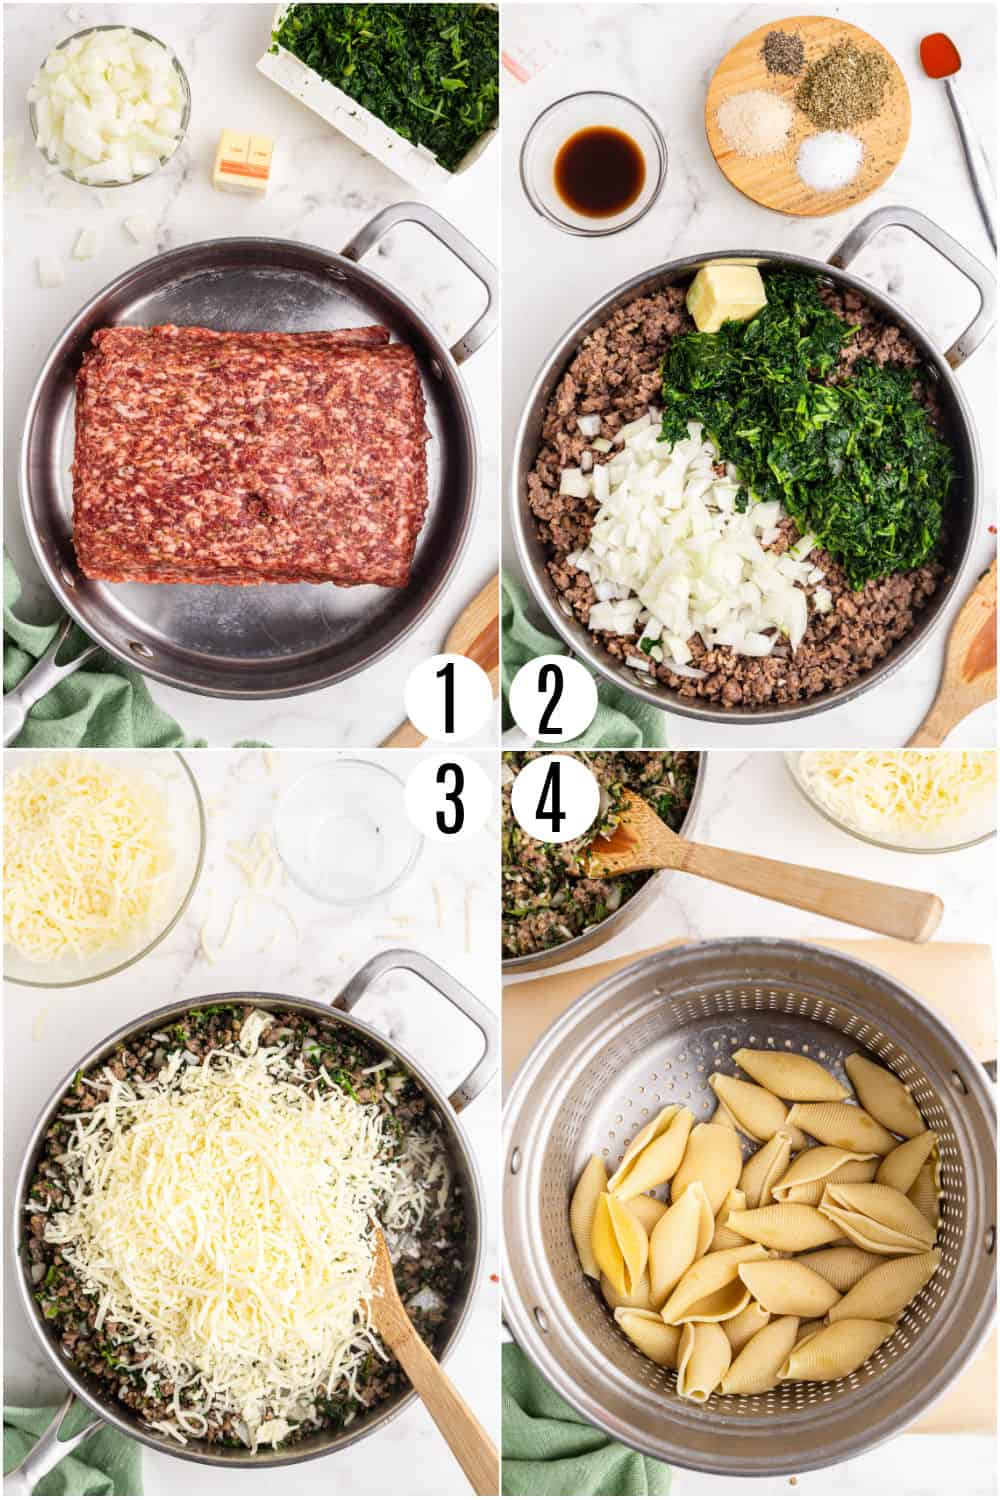 Step by step photos showing how to prepare ingredients for stuffed pasta shells.